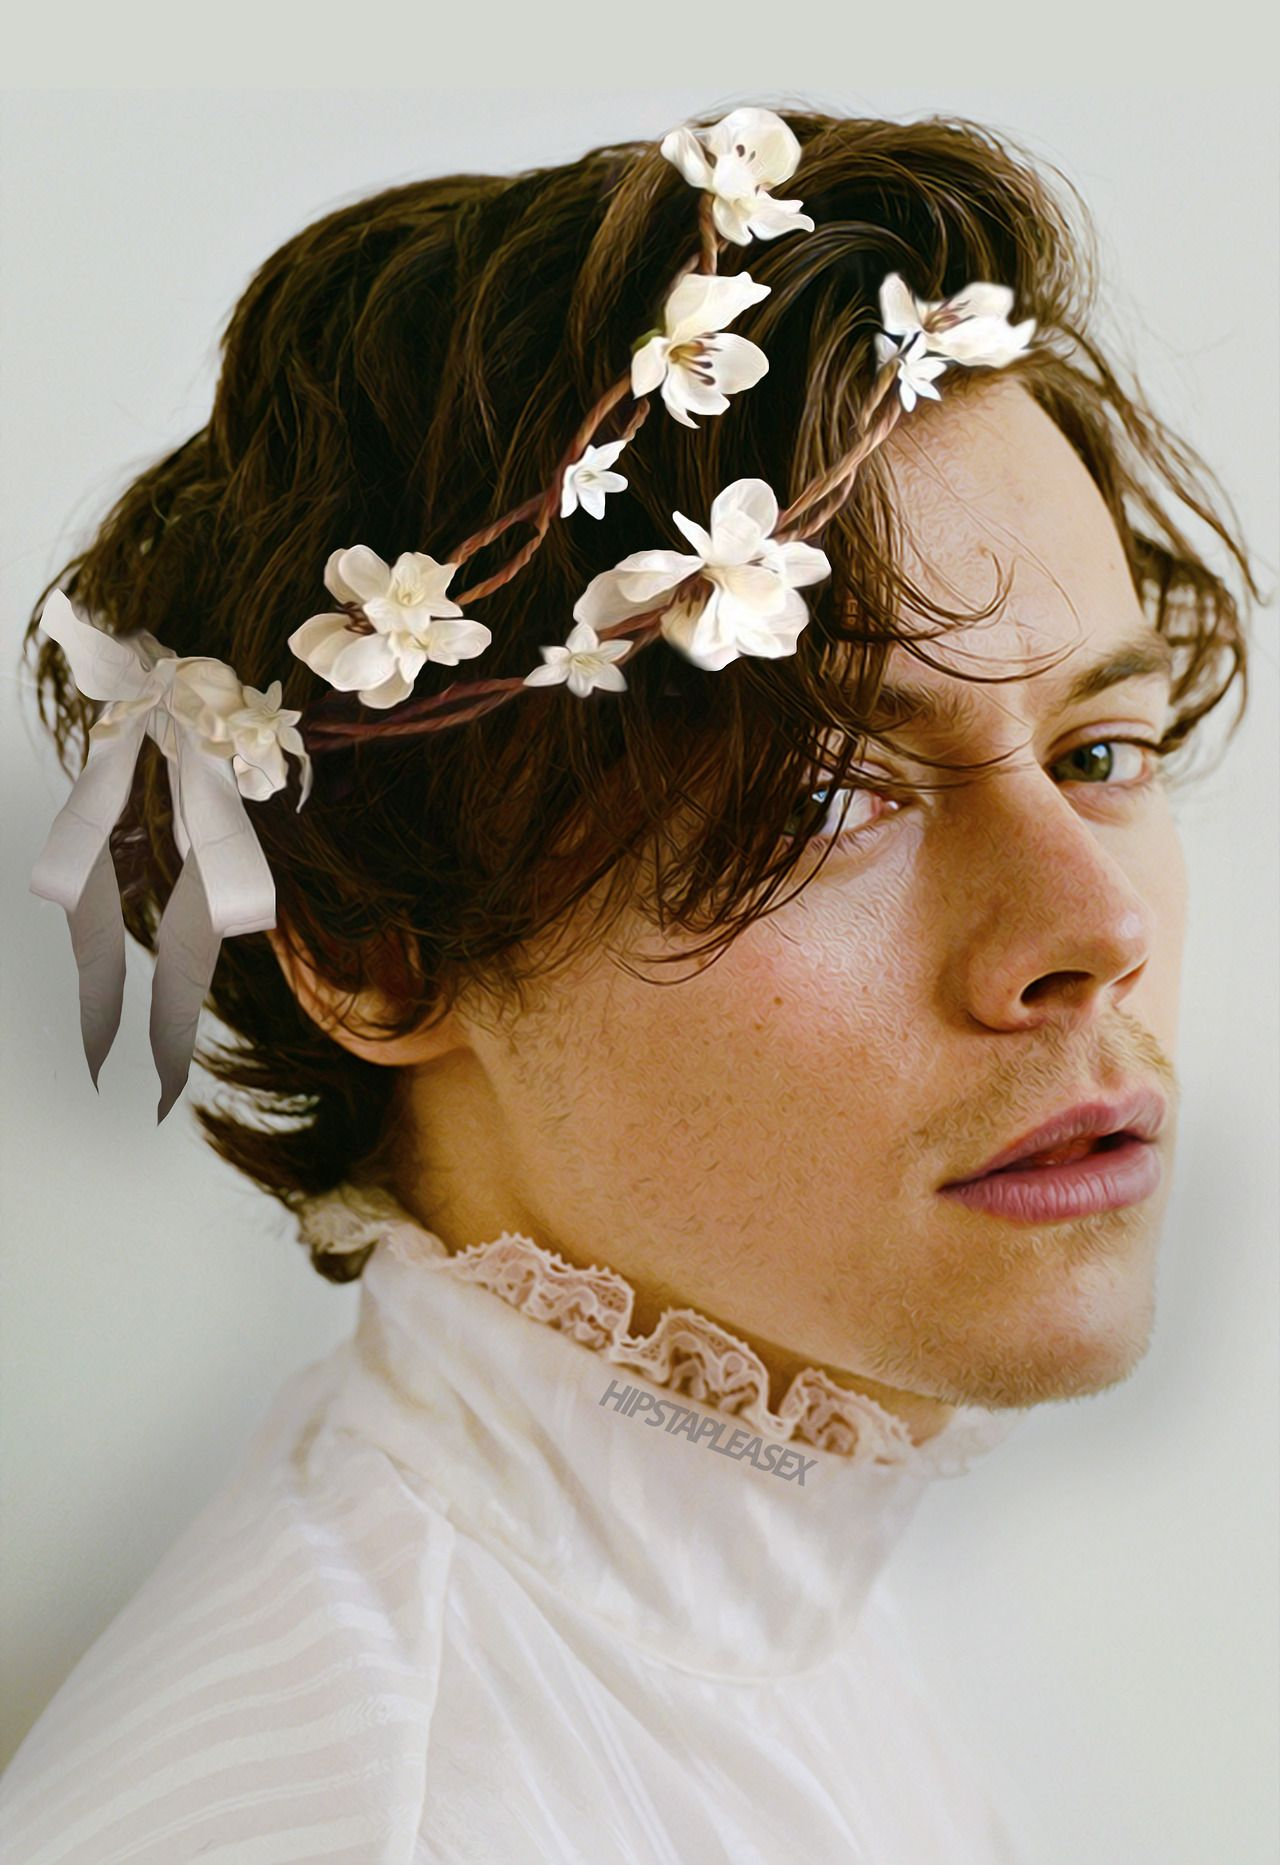 Bellustyles king styles flower crown styles harry styles bellustyles king styles flower crown styles izmirmasajfo